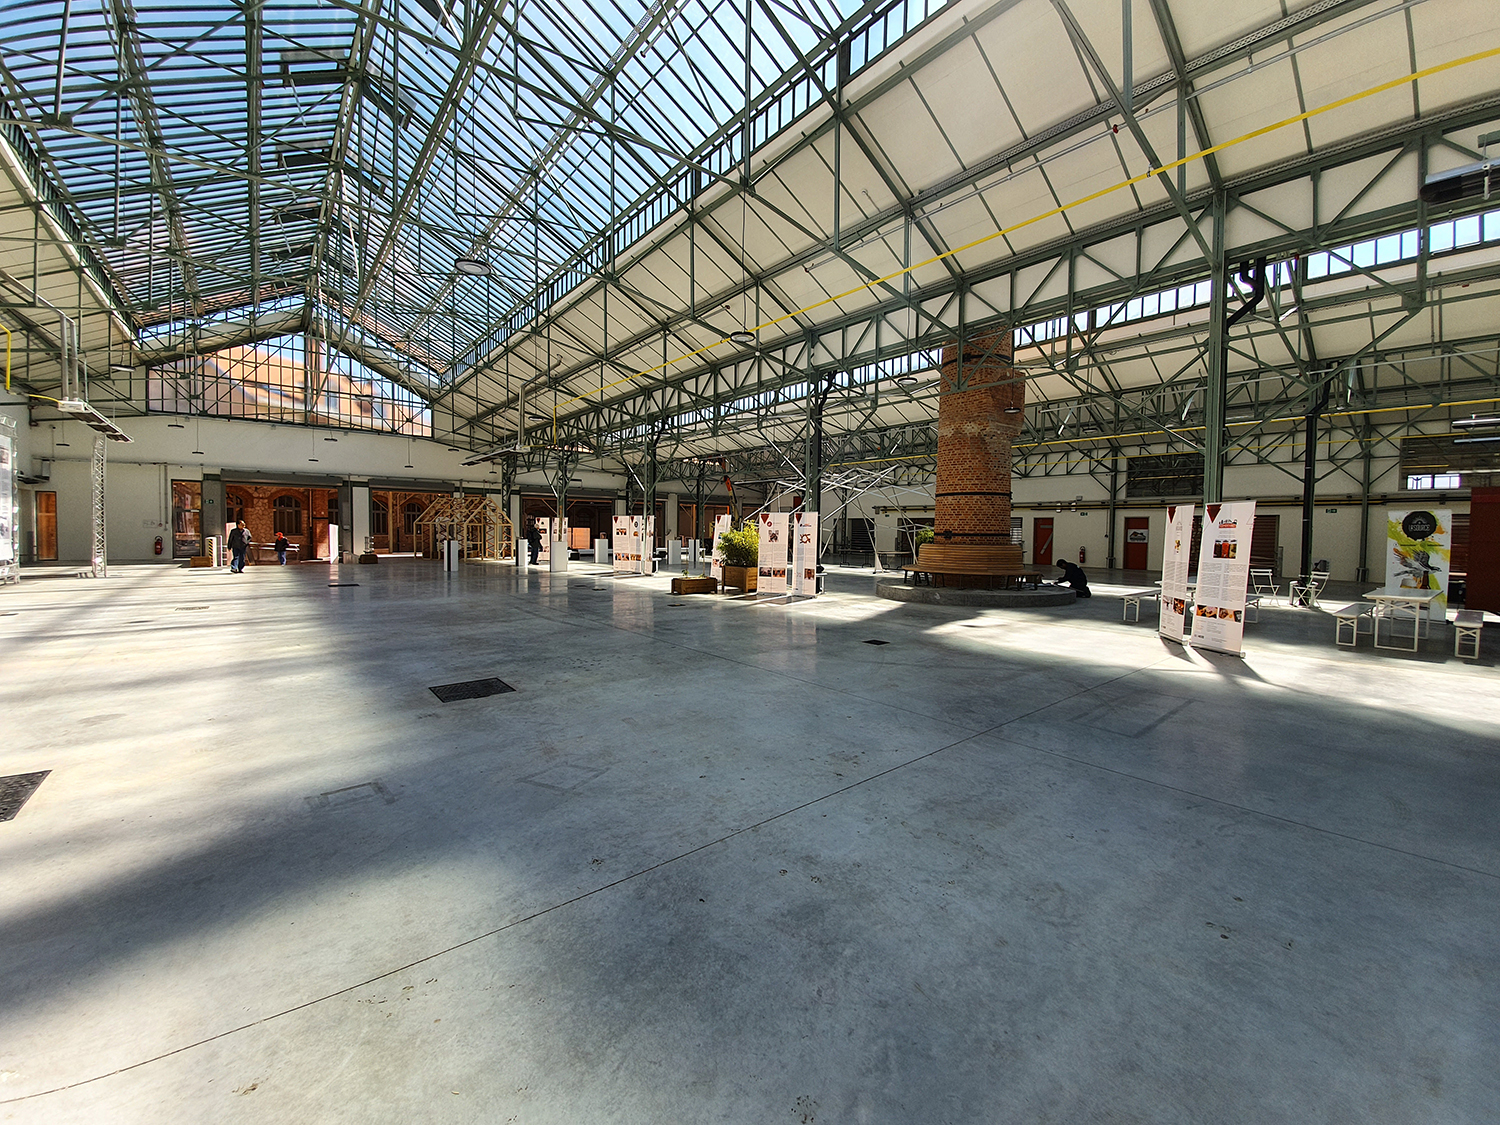 Interior with a glass roof and steel structure